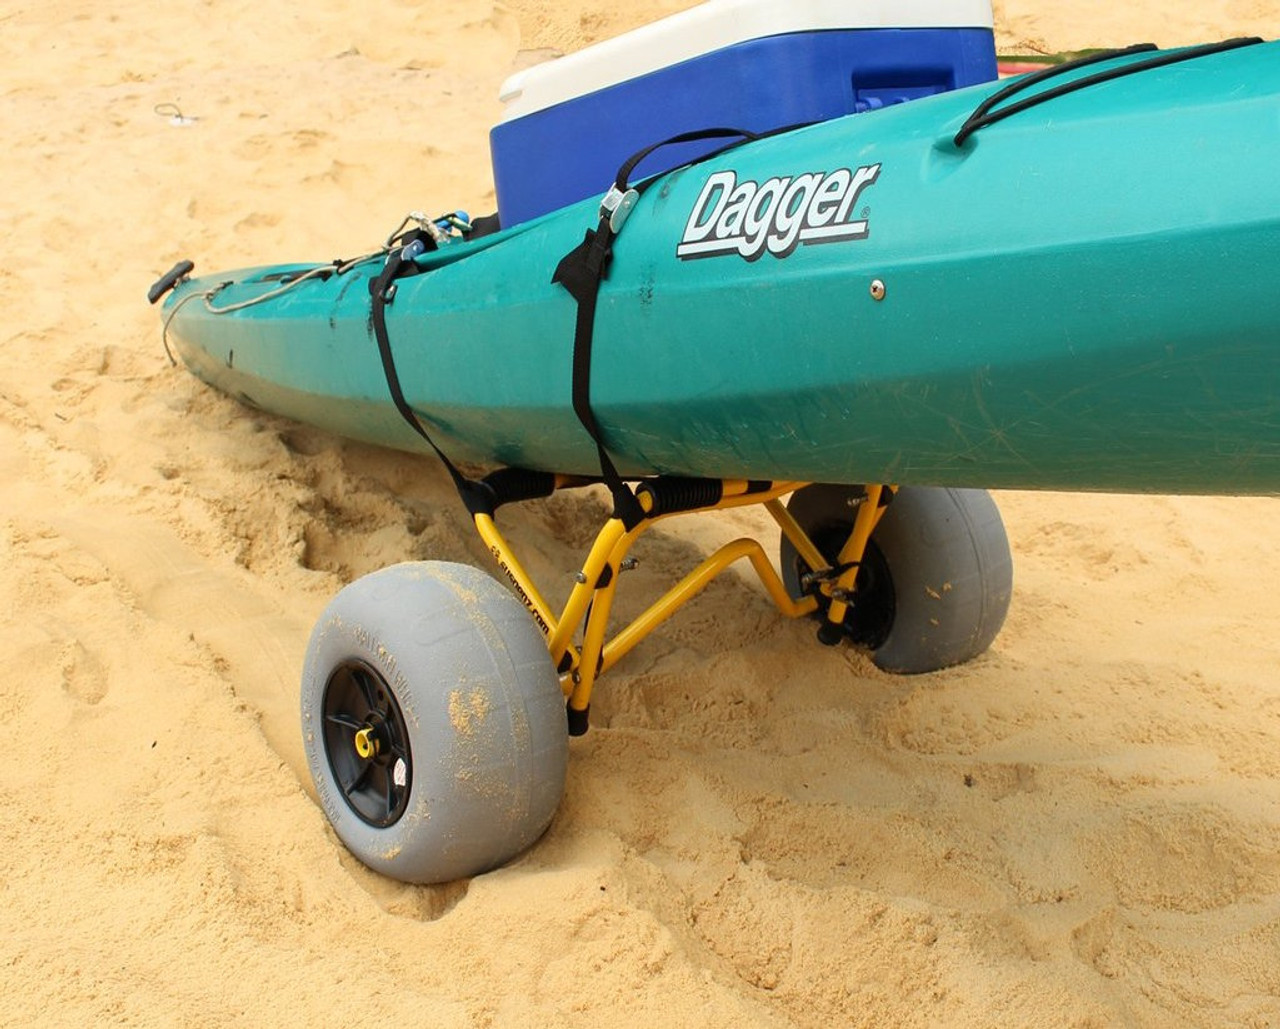 Balloon Wheel Kayak Dolly  Supports Boats Up to 200 Lbs